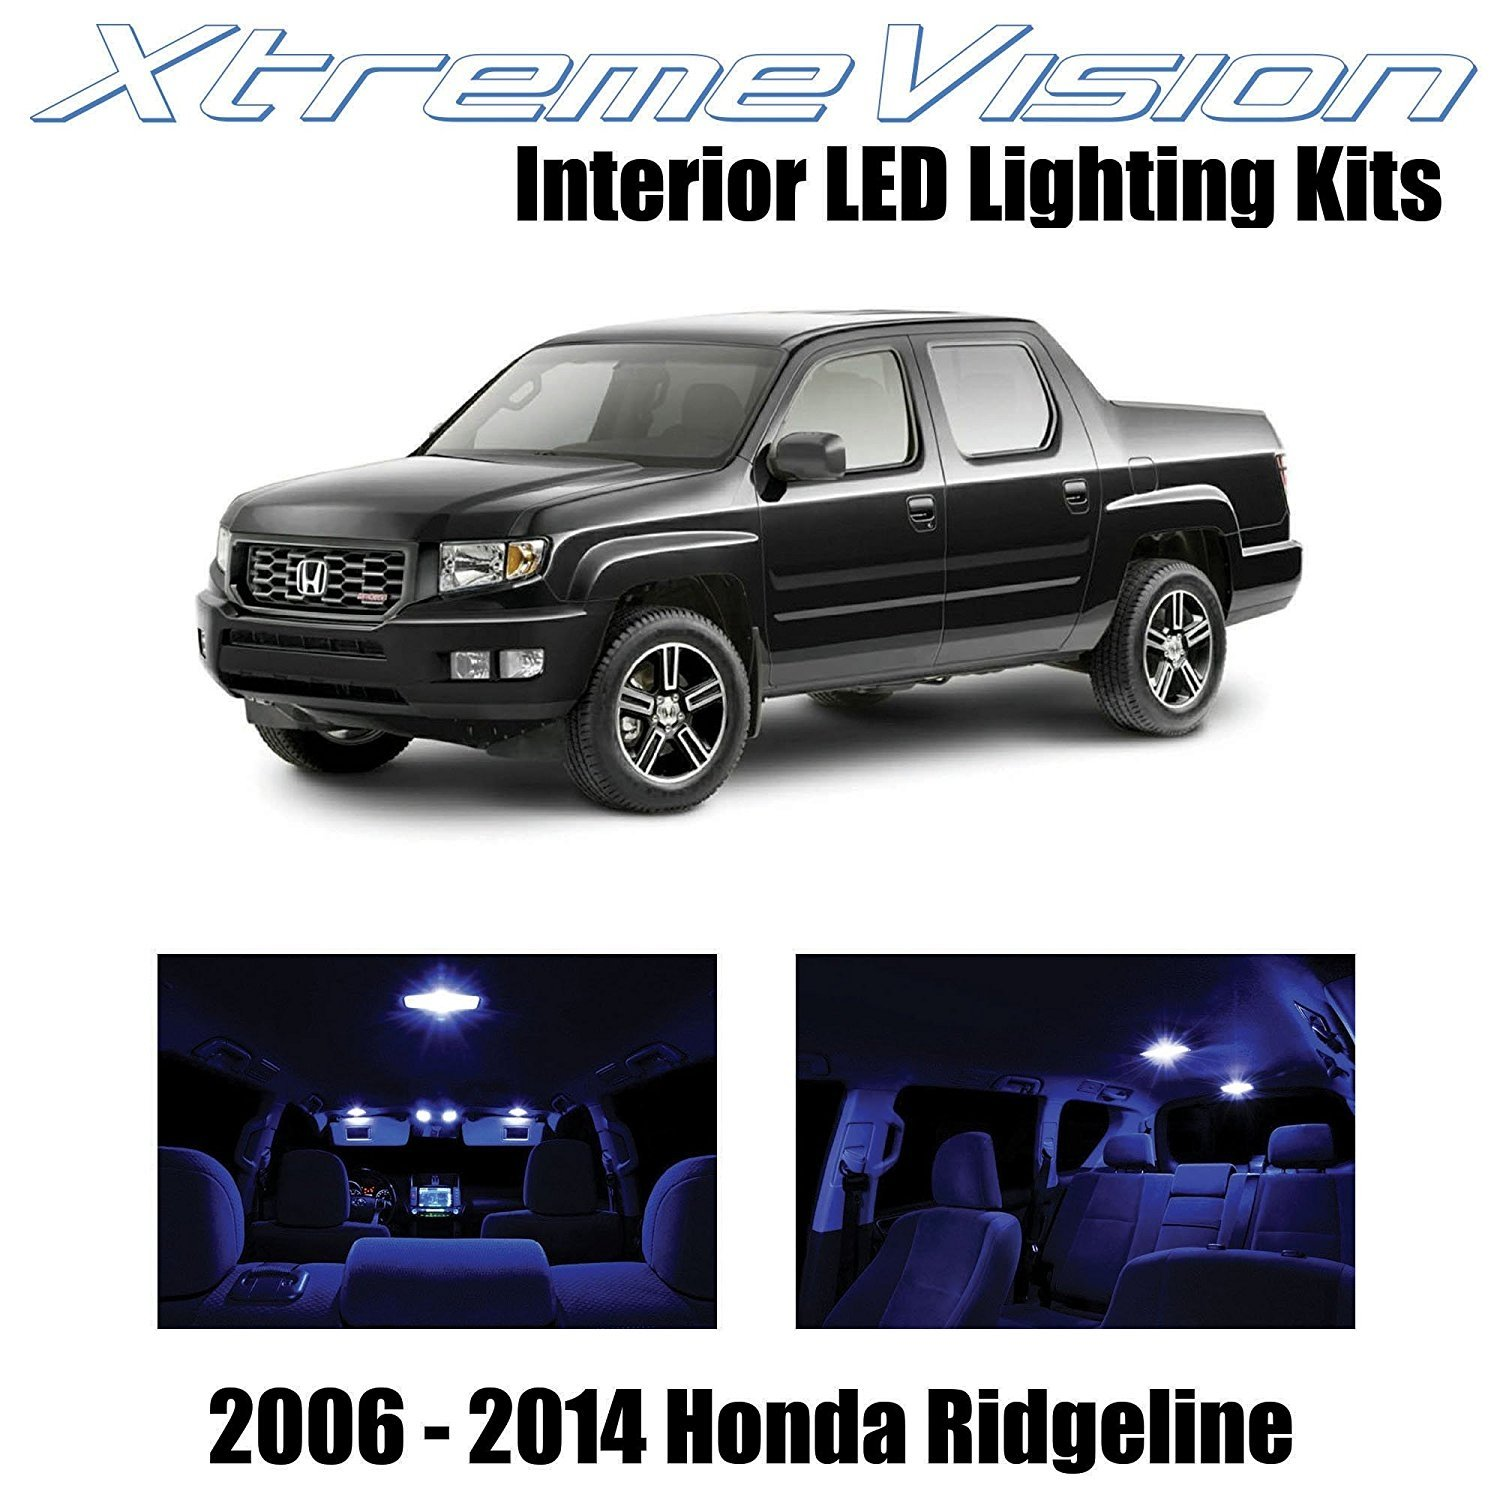 XtremeVision LED for Honda Ridgeline 2006-2014 (18 Pieces) Blue Premium Interior LED Kit Package + Installation Tool